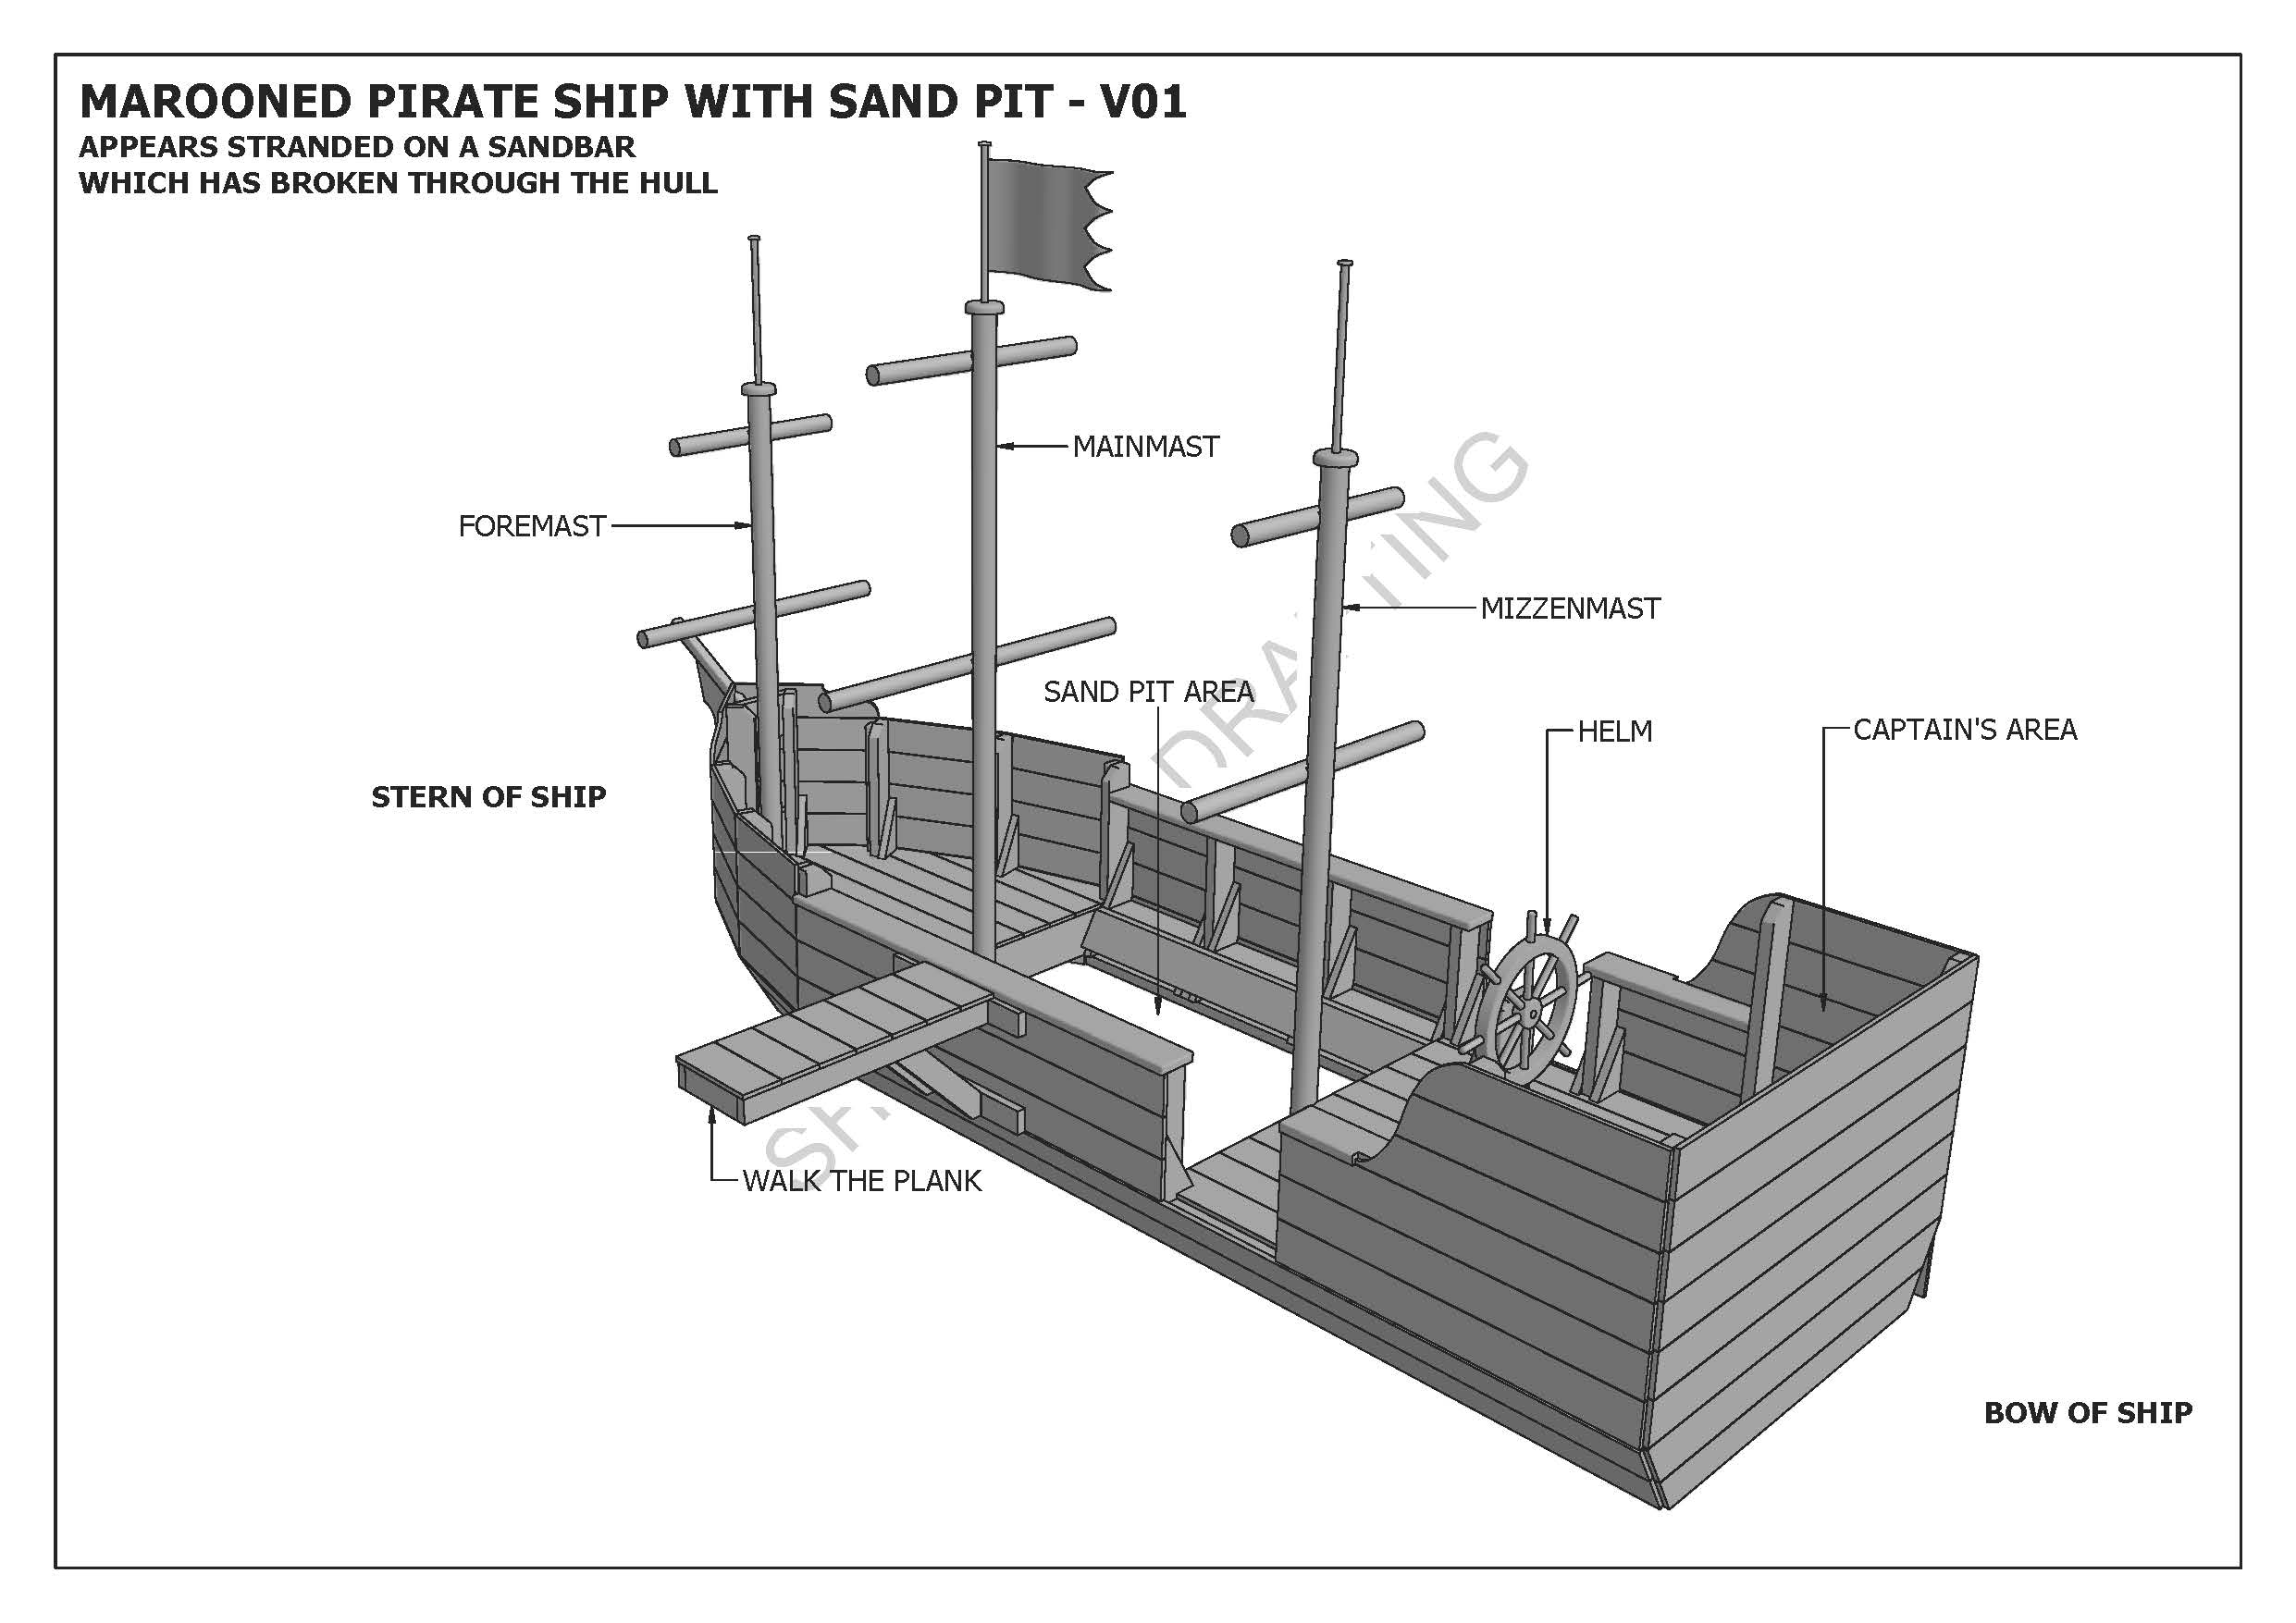 Marooned Pirate Boat With Sand Pit Cubby Play House Building Tall Ship Diagram Nautical History Pirates Ships Pinterest Click Thumbnails Above To Enlarge